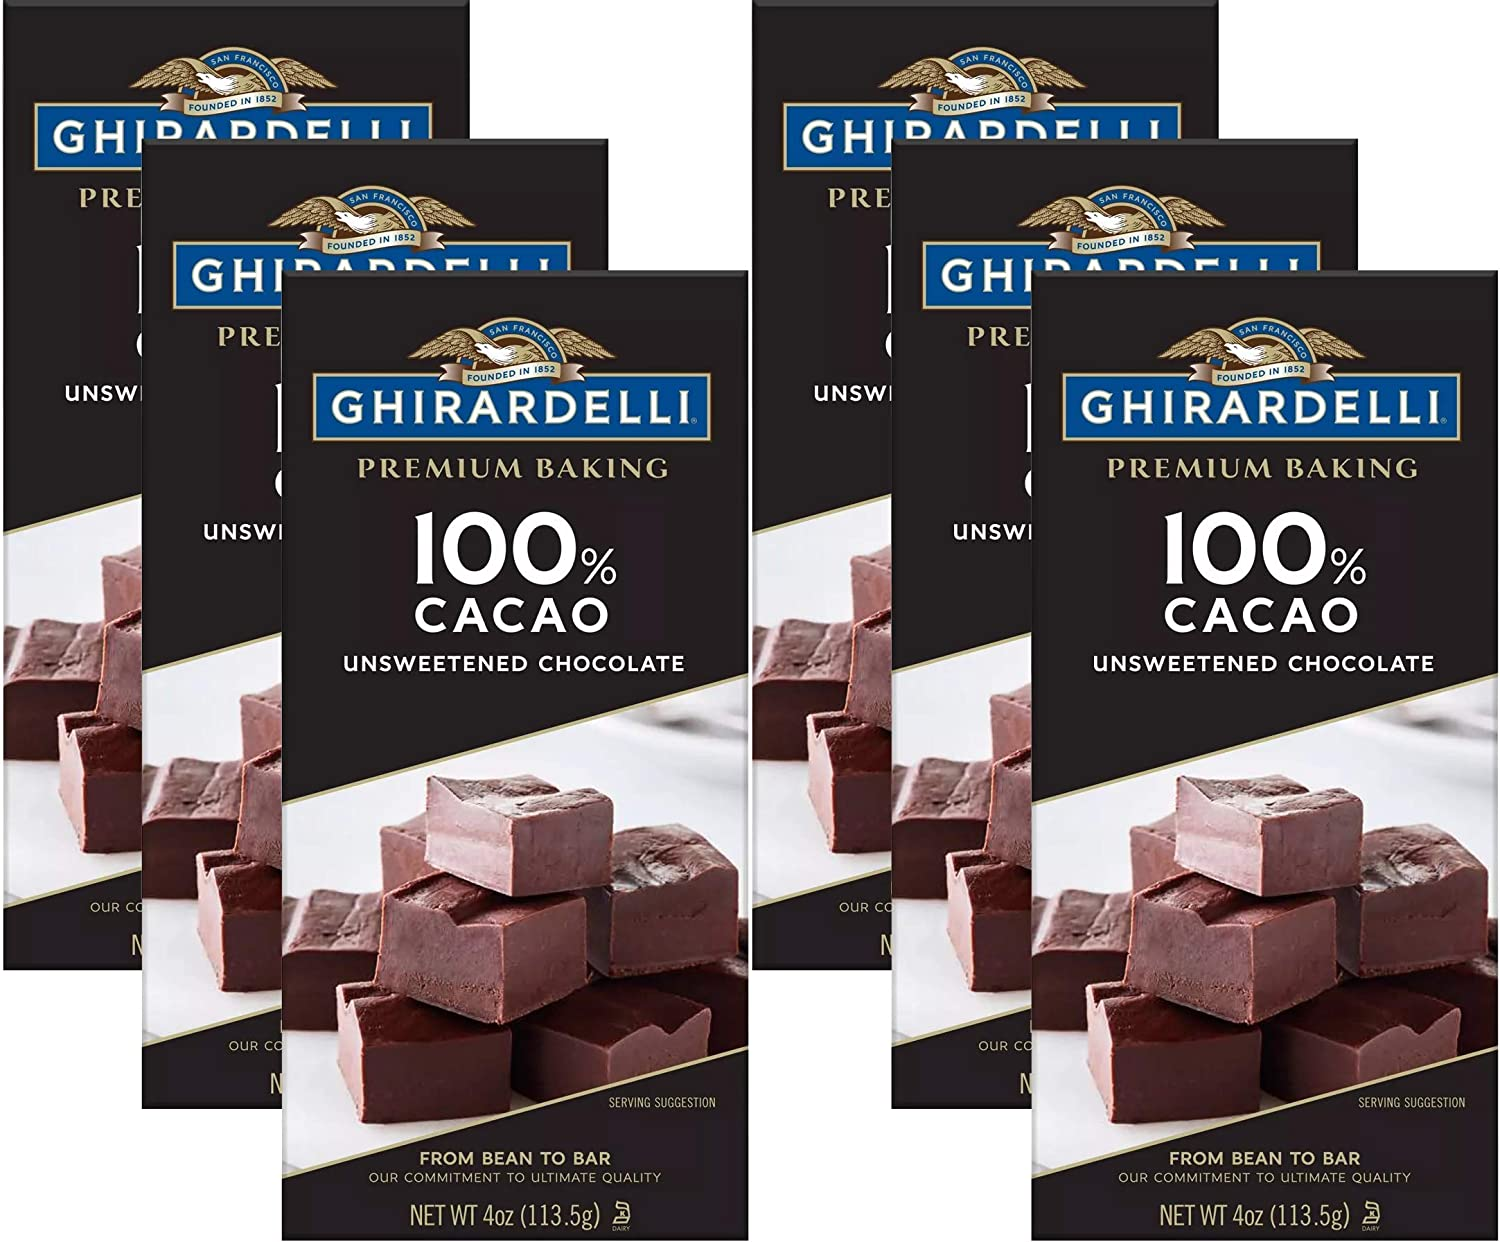 Max 77% OFF Ghirardelli Chocolate Baking Bar Chocola Unsweetened Same day shipping Cacao 100%